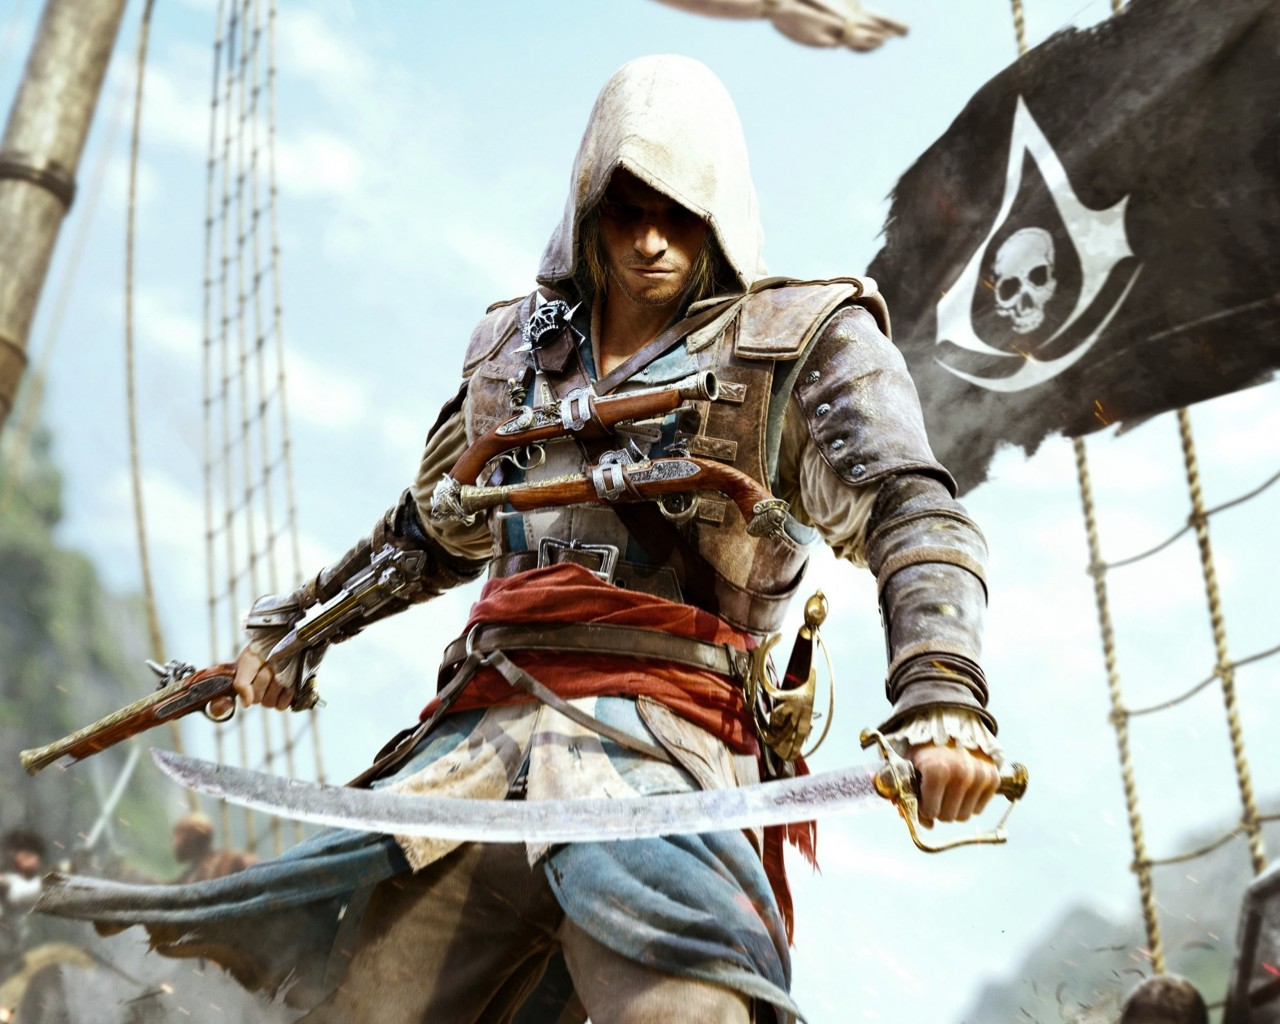 Assassin's Creed IV: Black Flag Wallpaper for Desktop 1280x1024